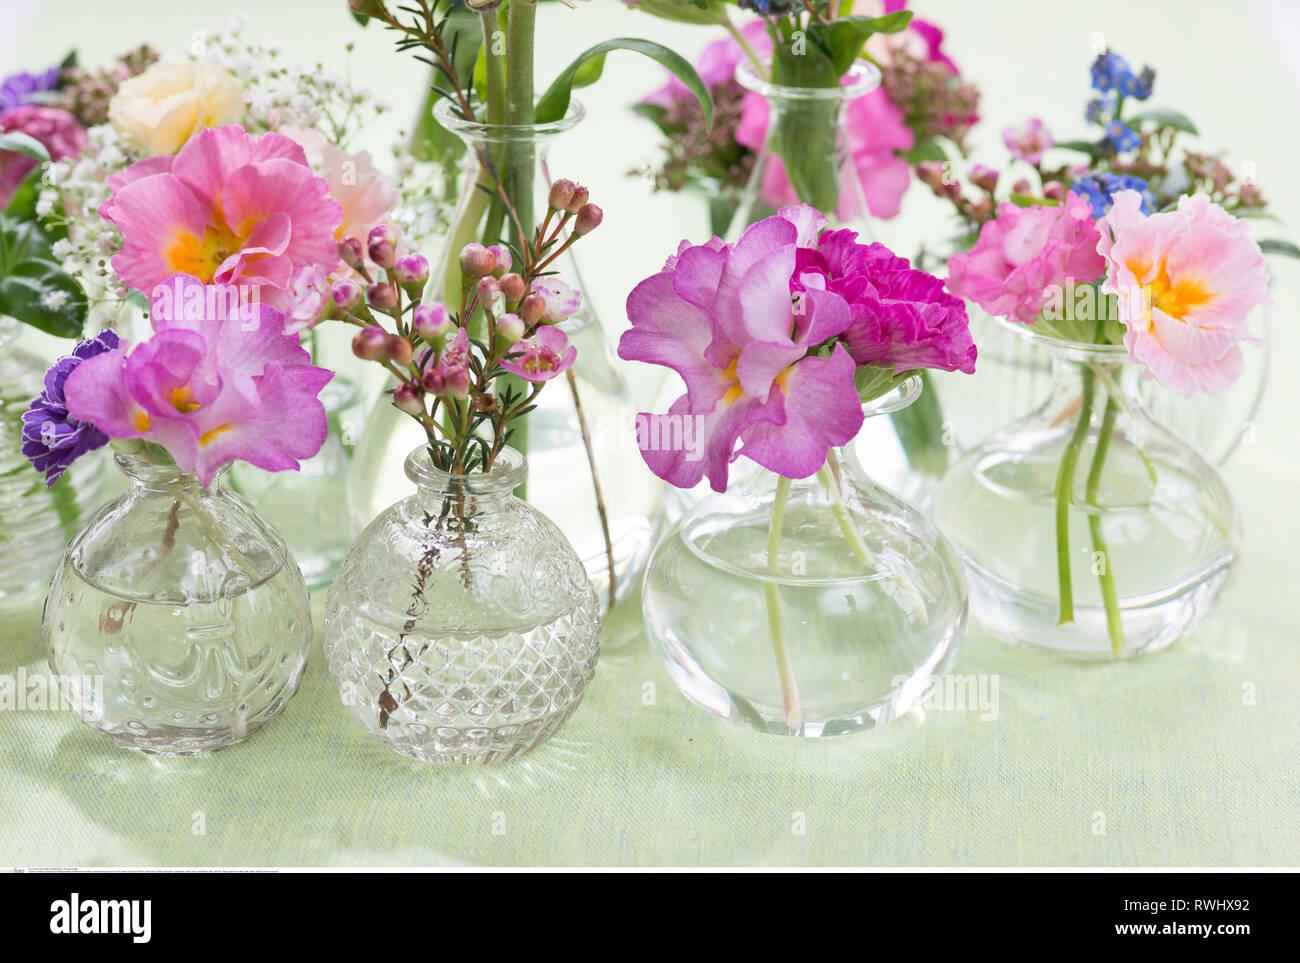 botany, ruched spring blooms in mini vases, Caution! For Greetingcard-Use / Postcard-Use In German Speaking Countries Certain Restrictions May Apply - Stock Image